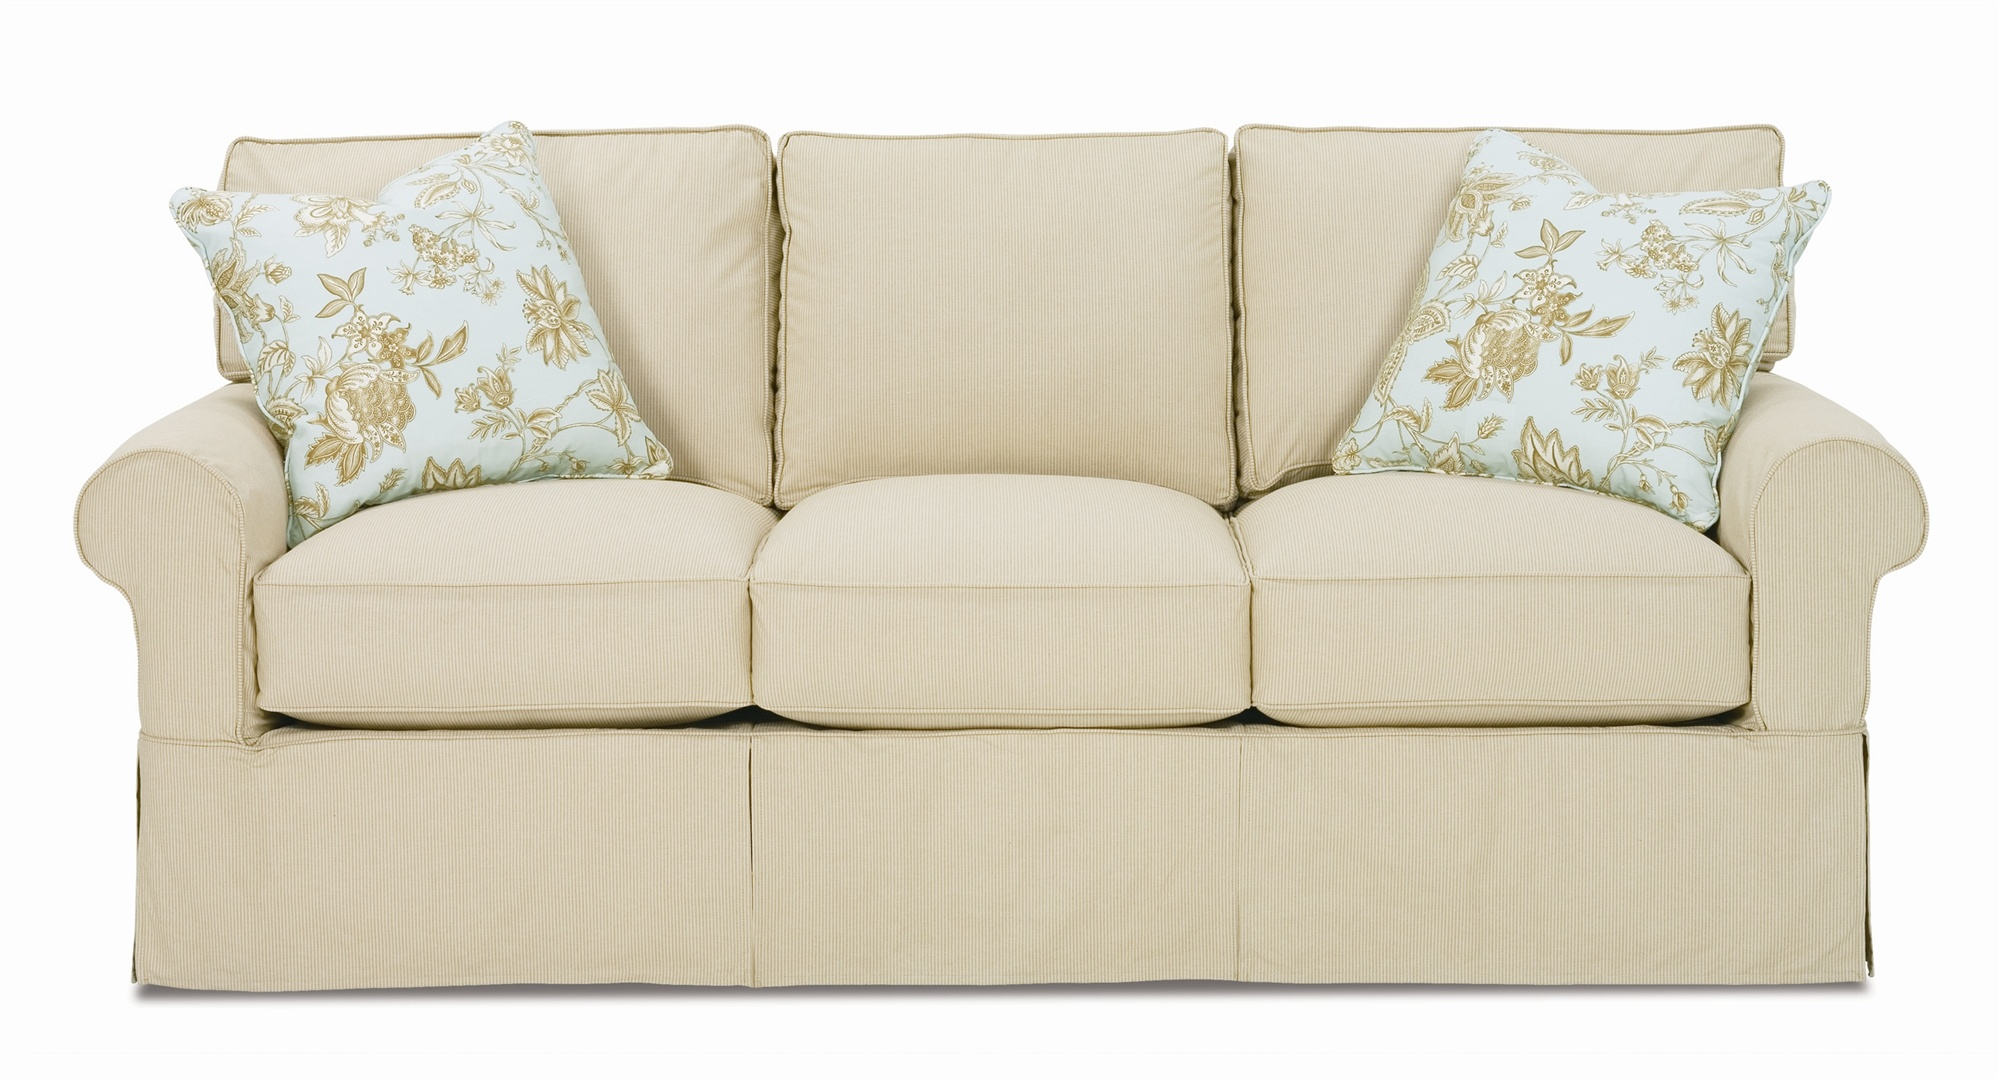 Quality Interiors Sofa Slipcover